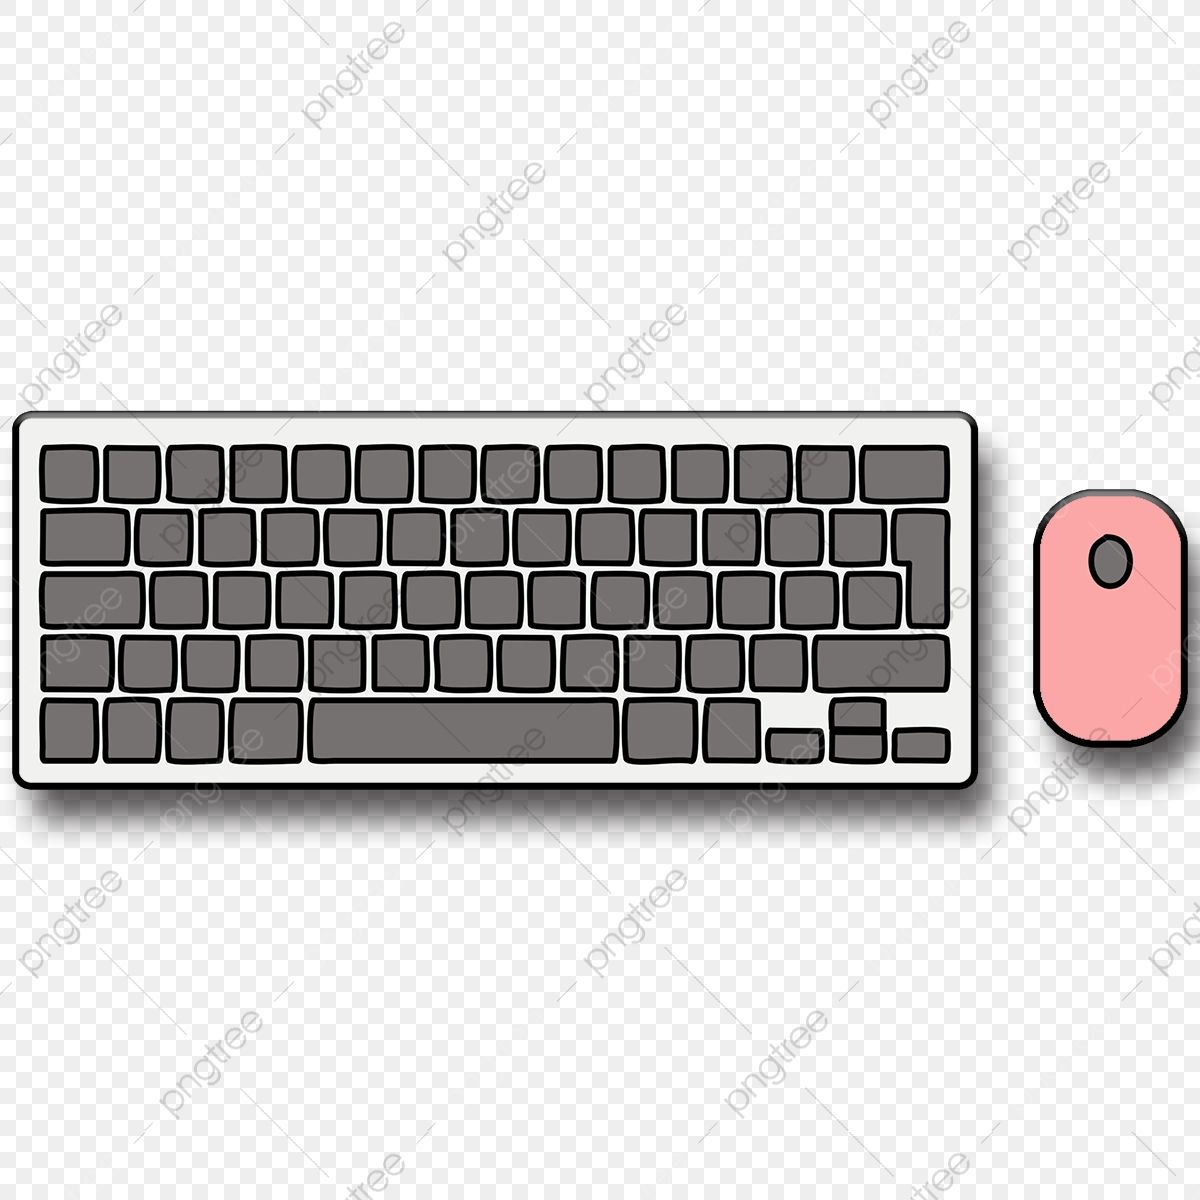 Keyboard And Mouse Creative Fig Keyboard Vector Vector Keyboard Png Transparent Clipart Image And Psd File For Free Download In 2021 Keyboard Mint Color Palettes Keyboard And Mouse